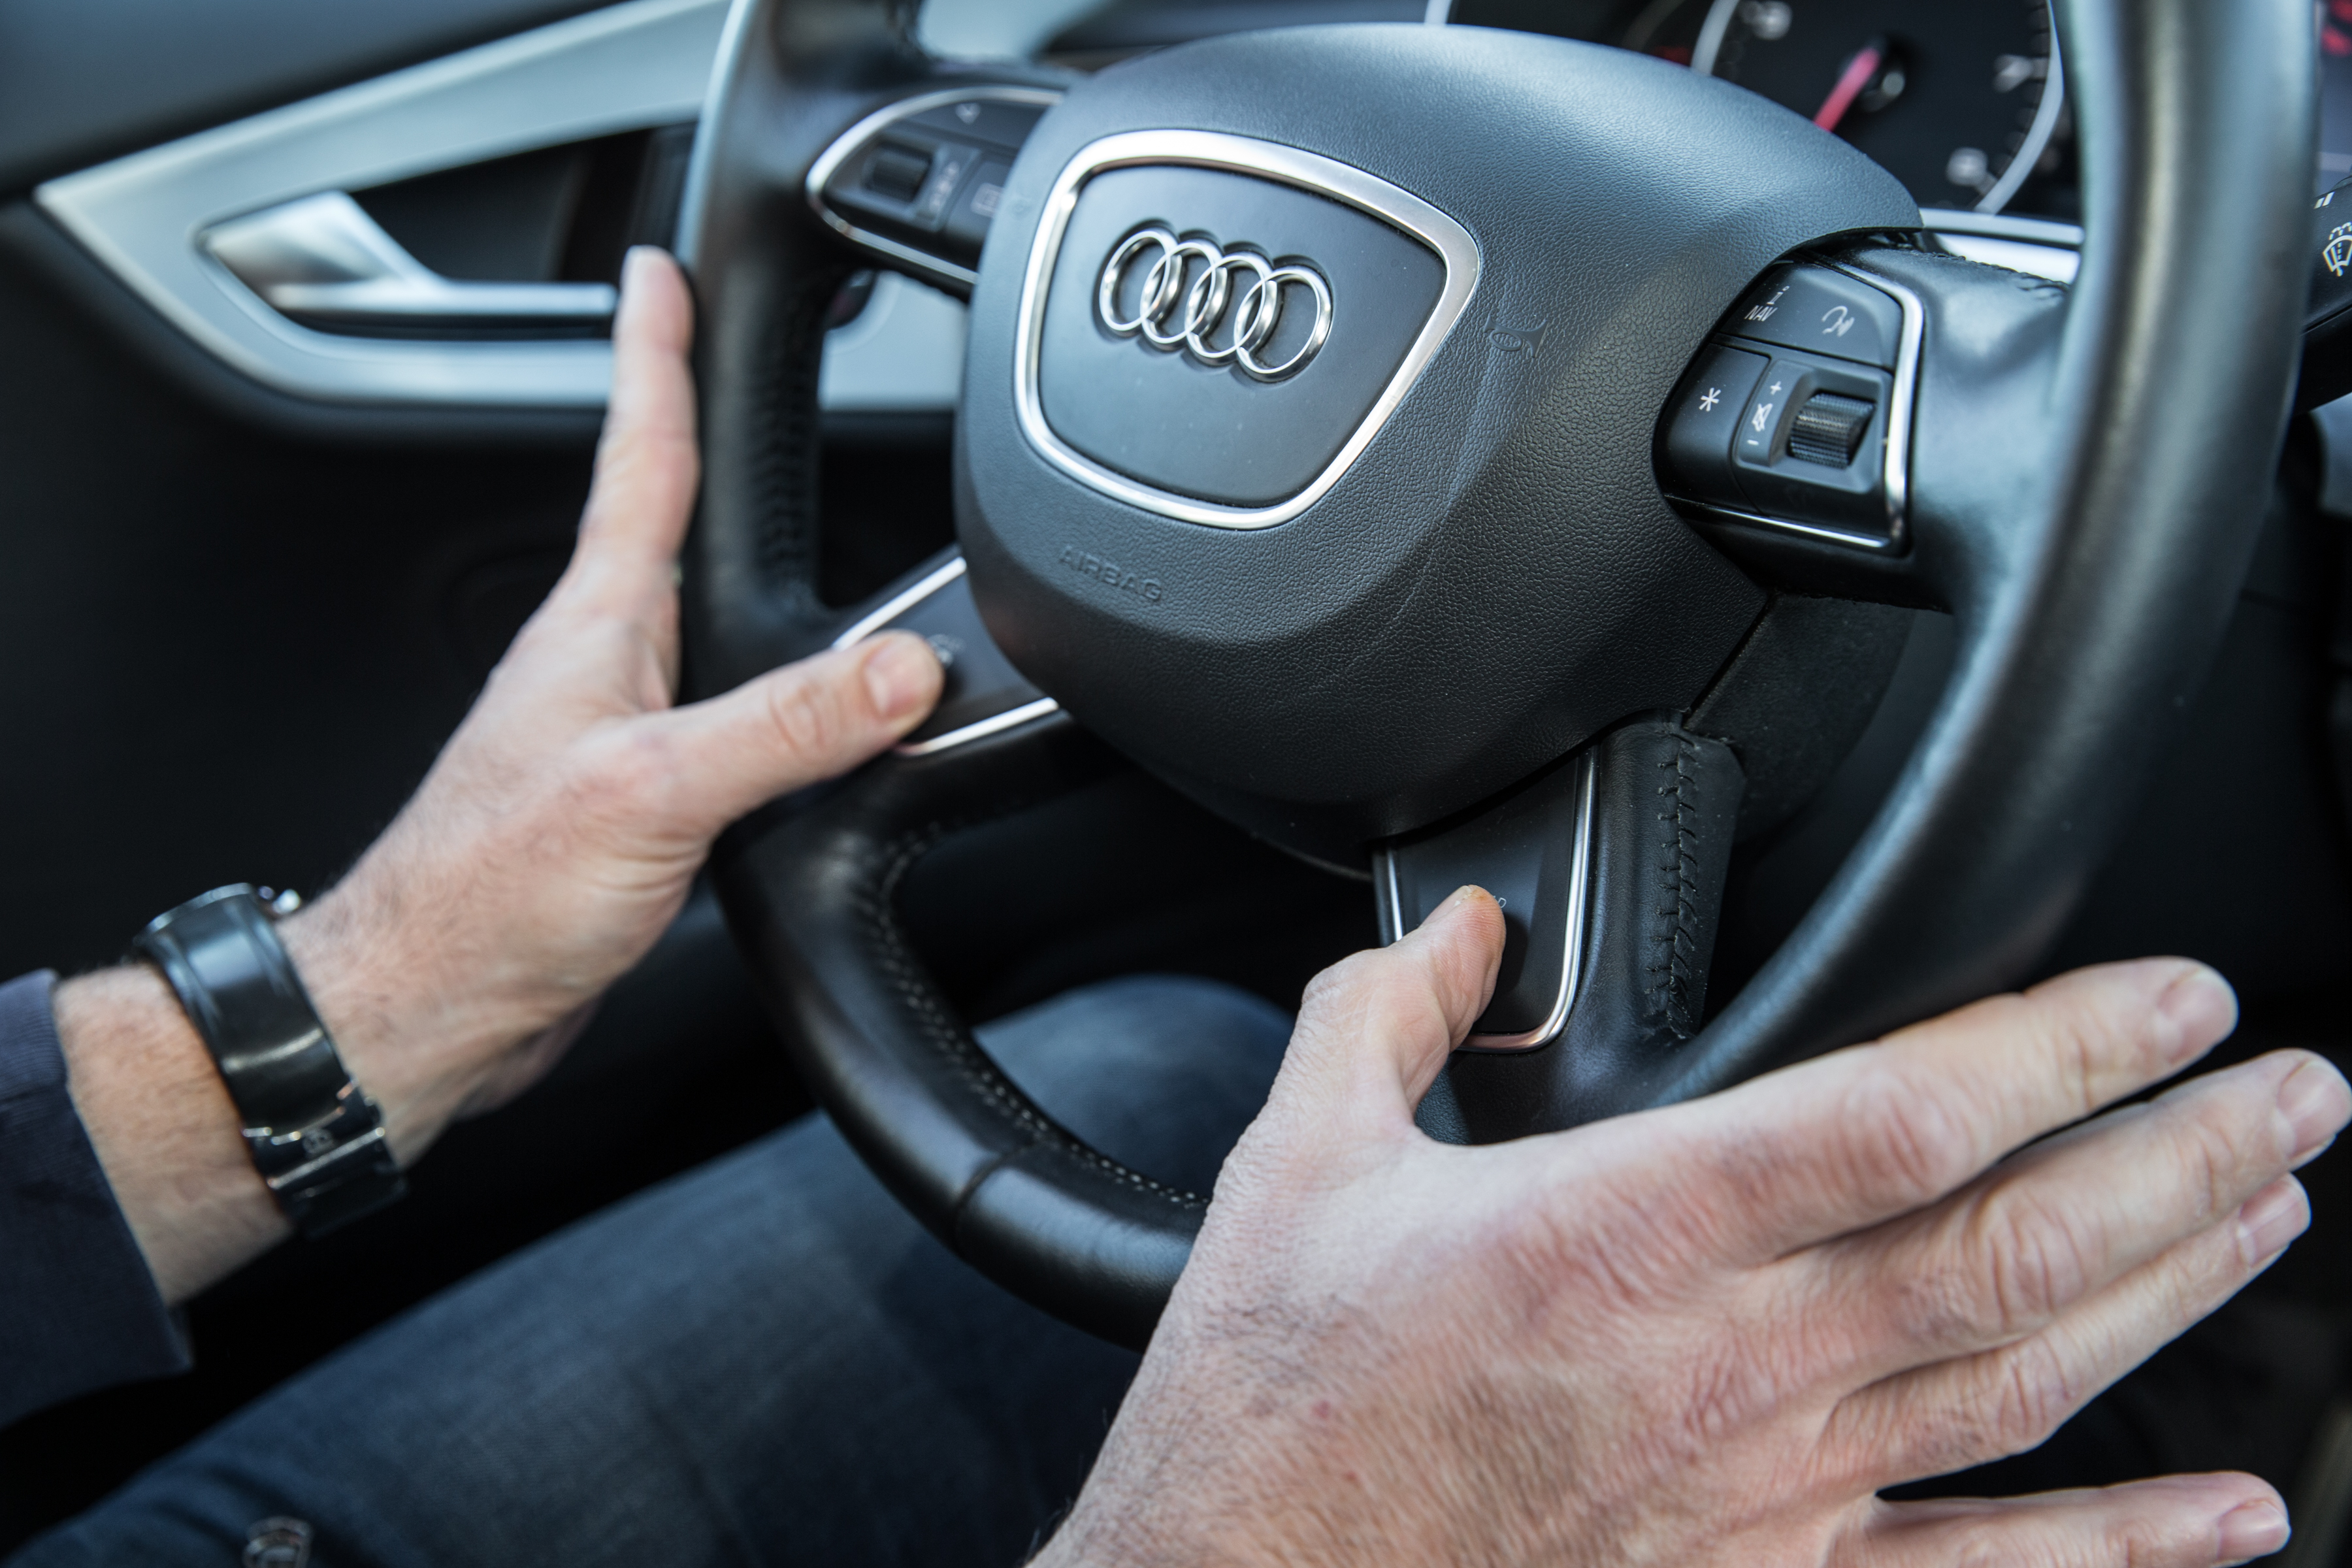 Audi's self-driving car: Hands off the steering wheel! | Fortune